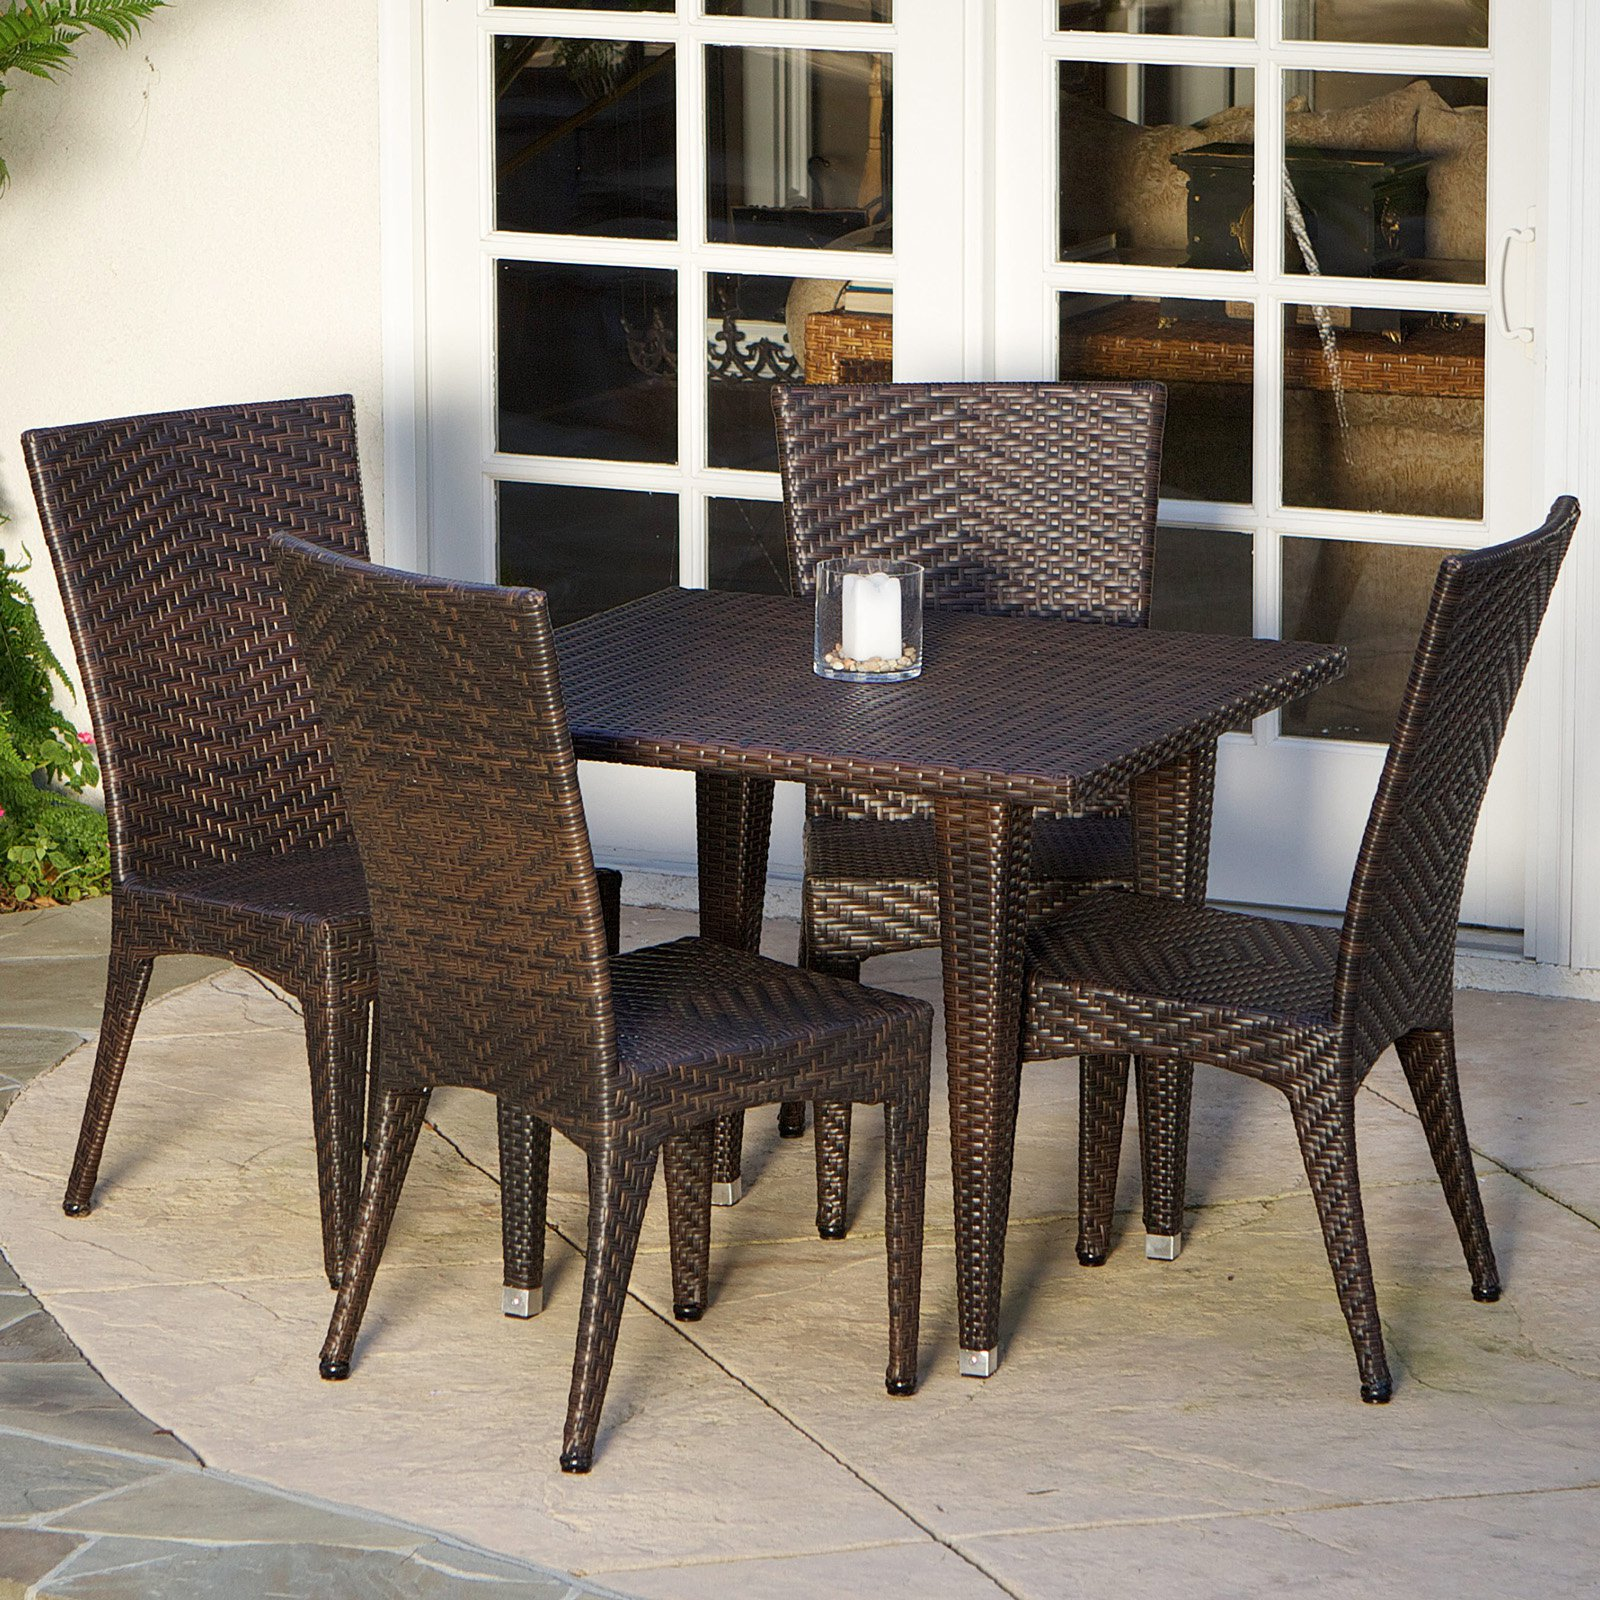 Brooke All-Weather Wicker Patio Dining Room Set Seats 4 by Best Selling Home Decor Furniture LLC